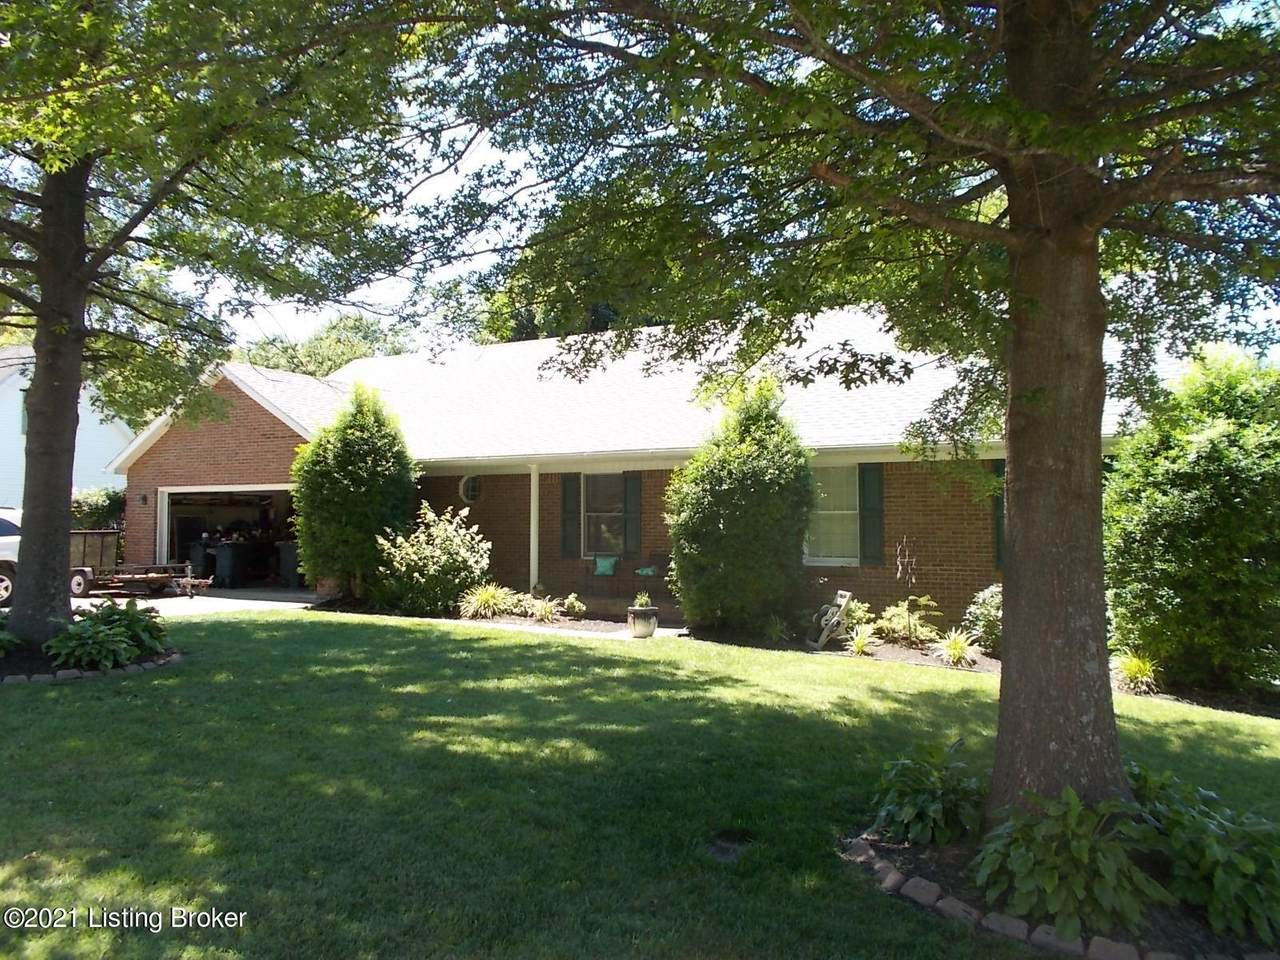 102 Olympia Dr - Photo 1